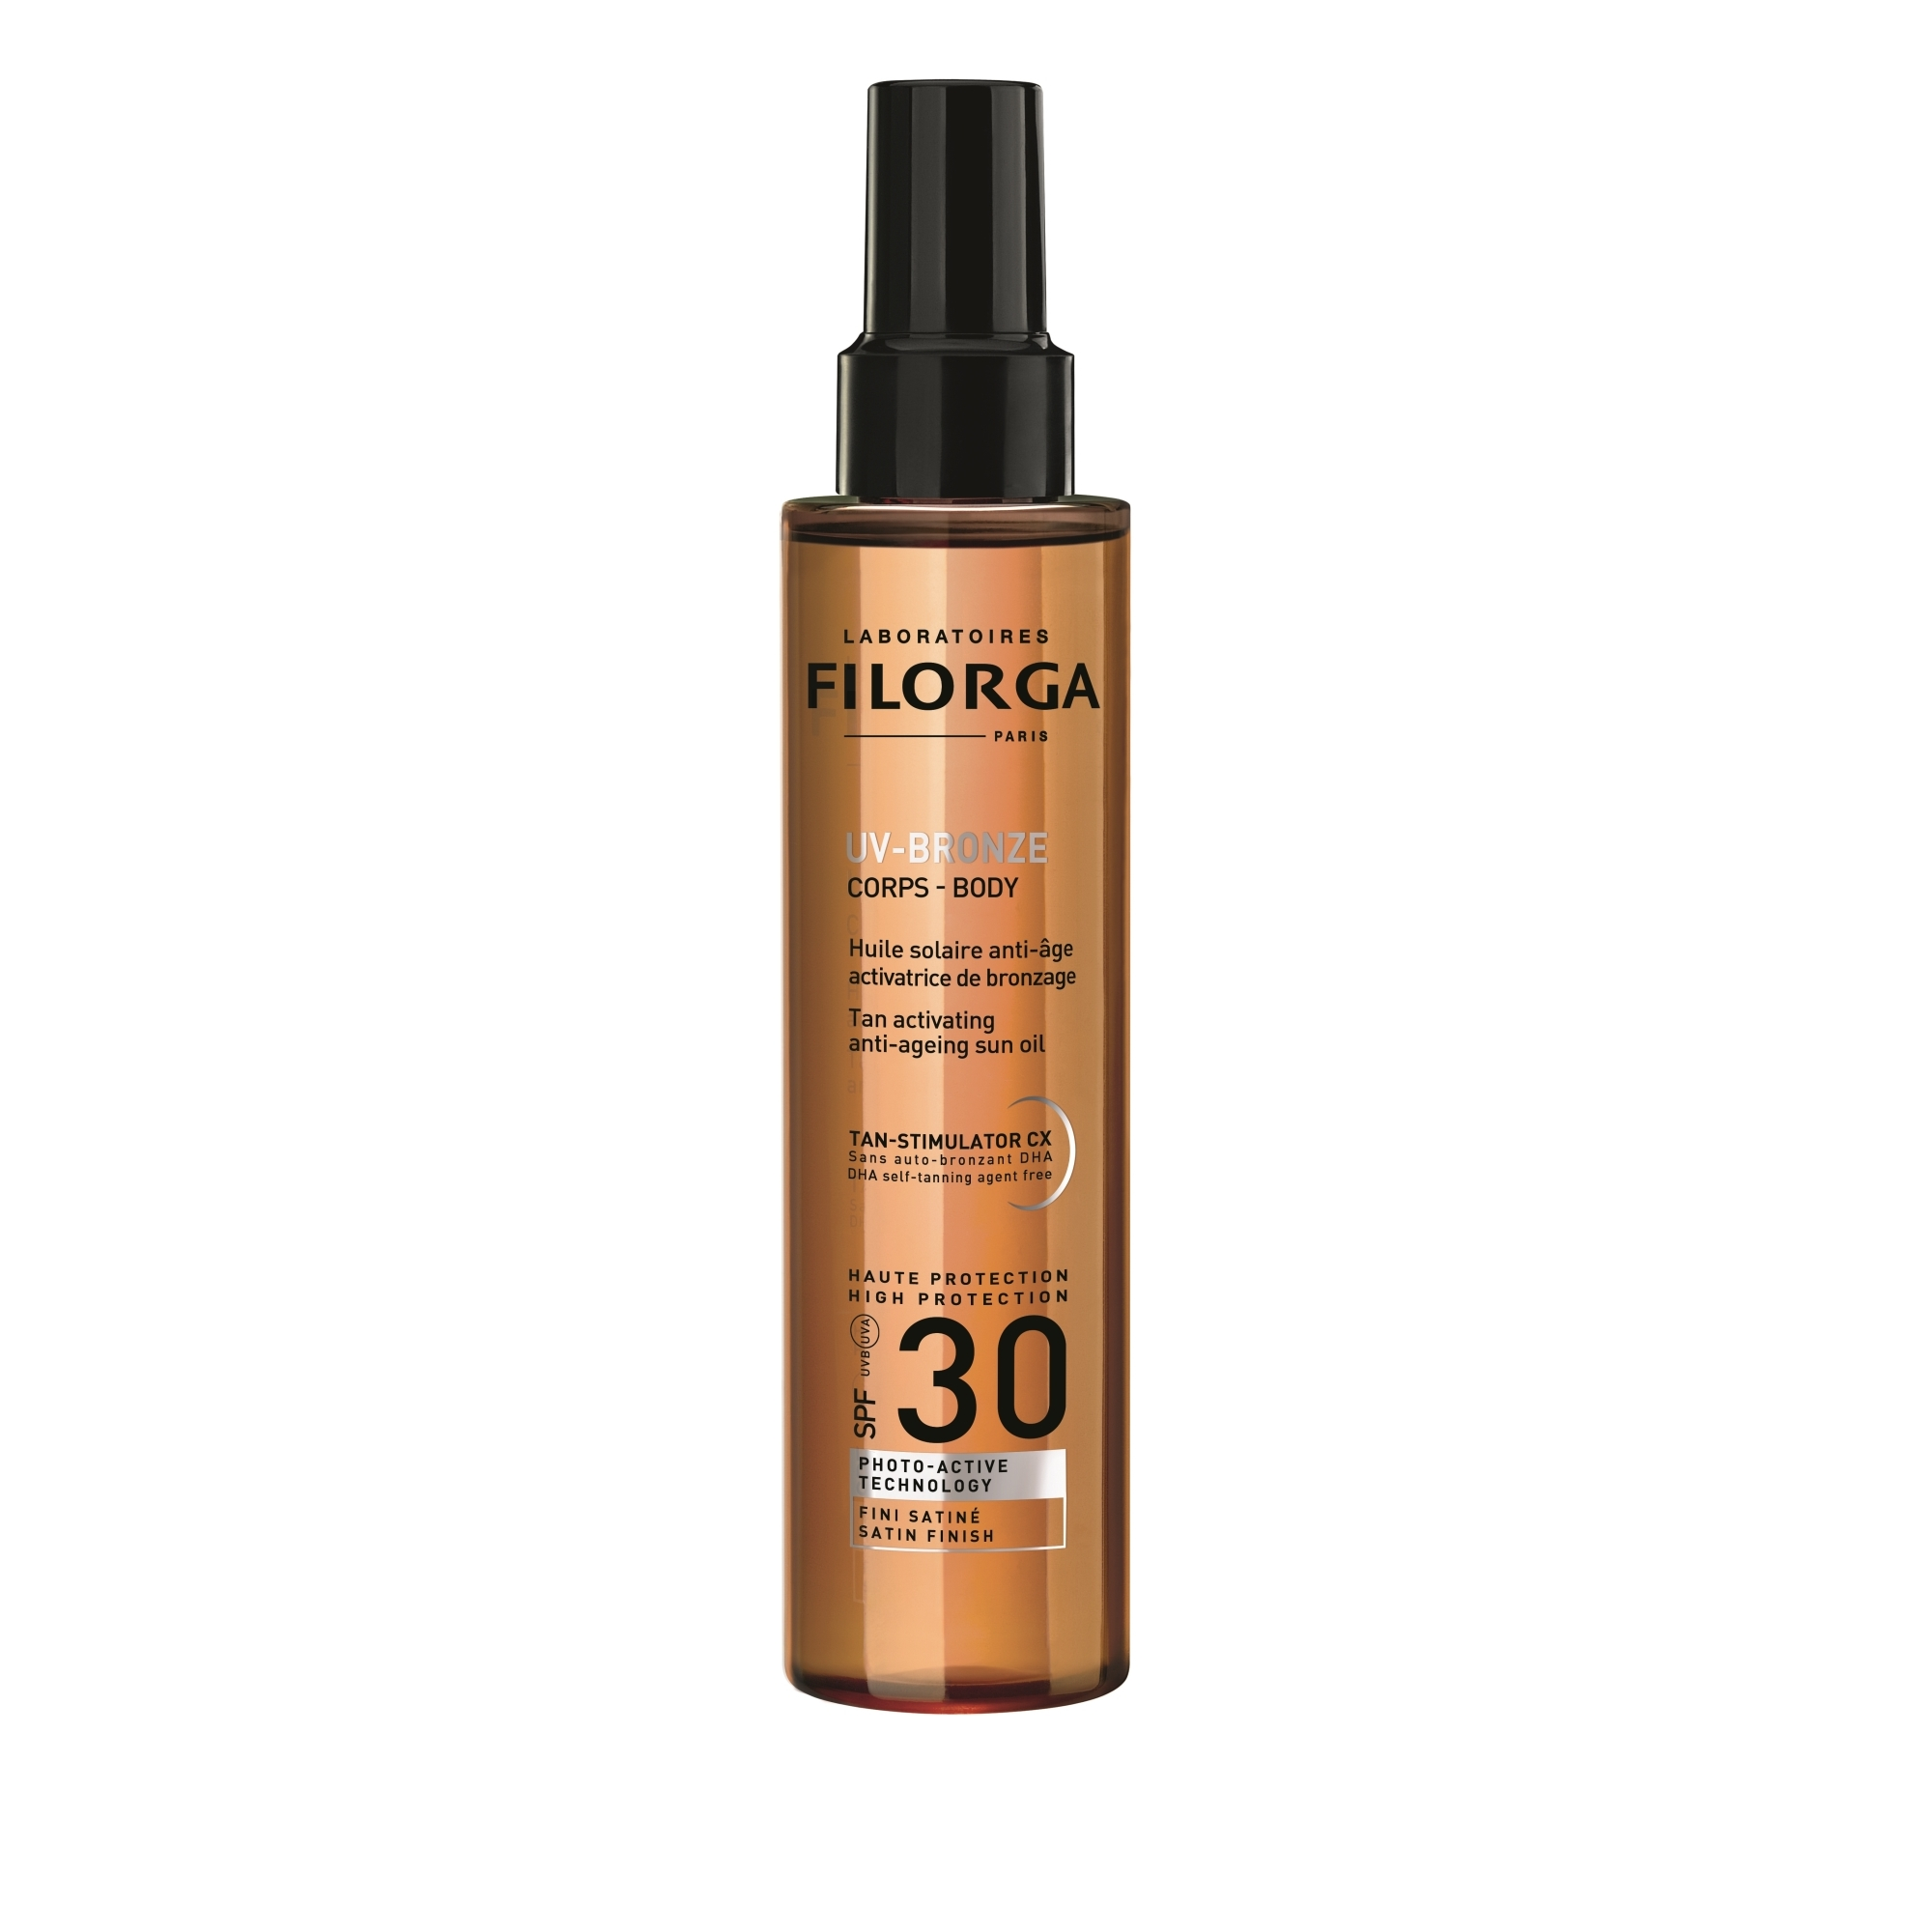 Uv Bronze Body Spf 30 Anti-Ageing